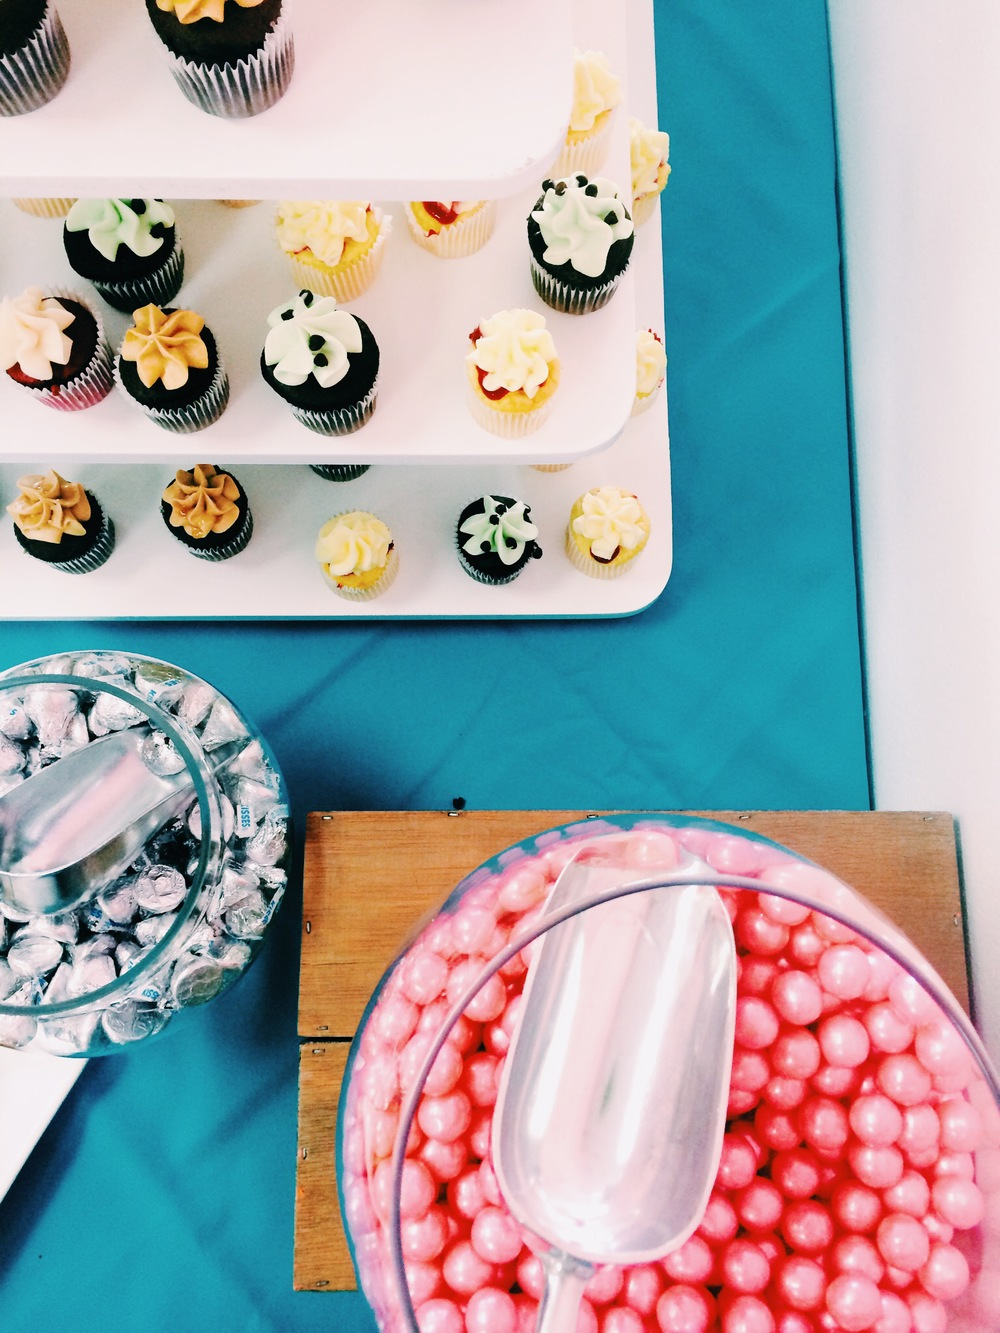 Mini cupcakes, Candy, and Kisses, oh my!